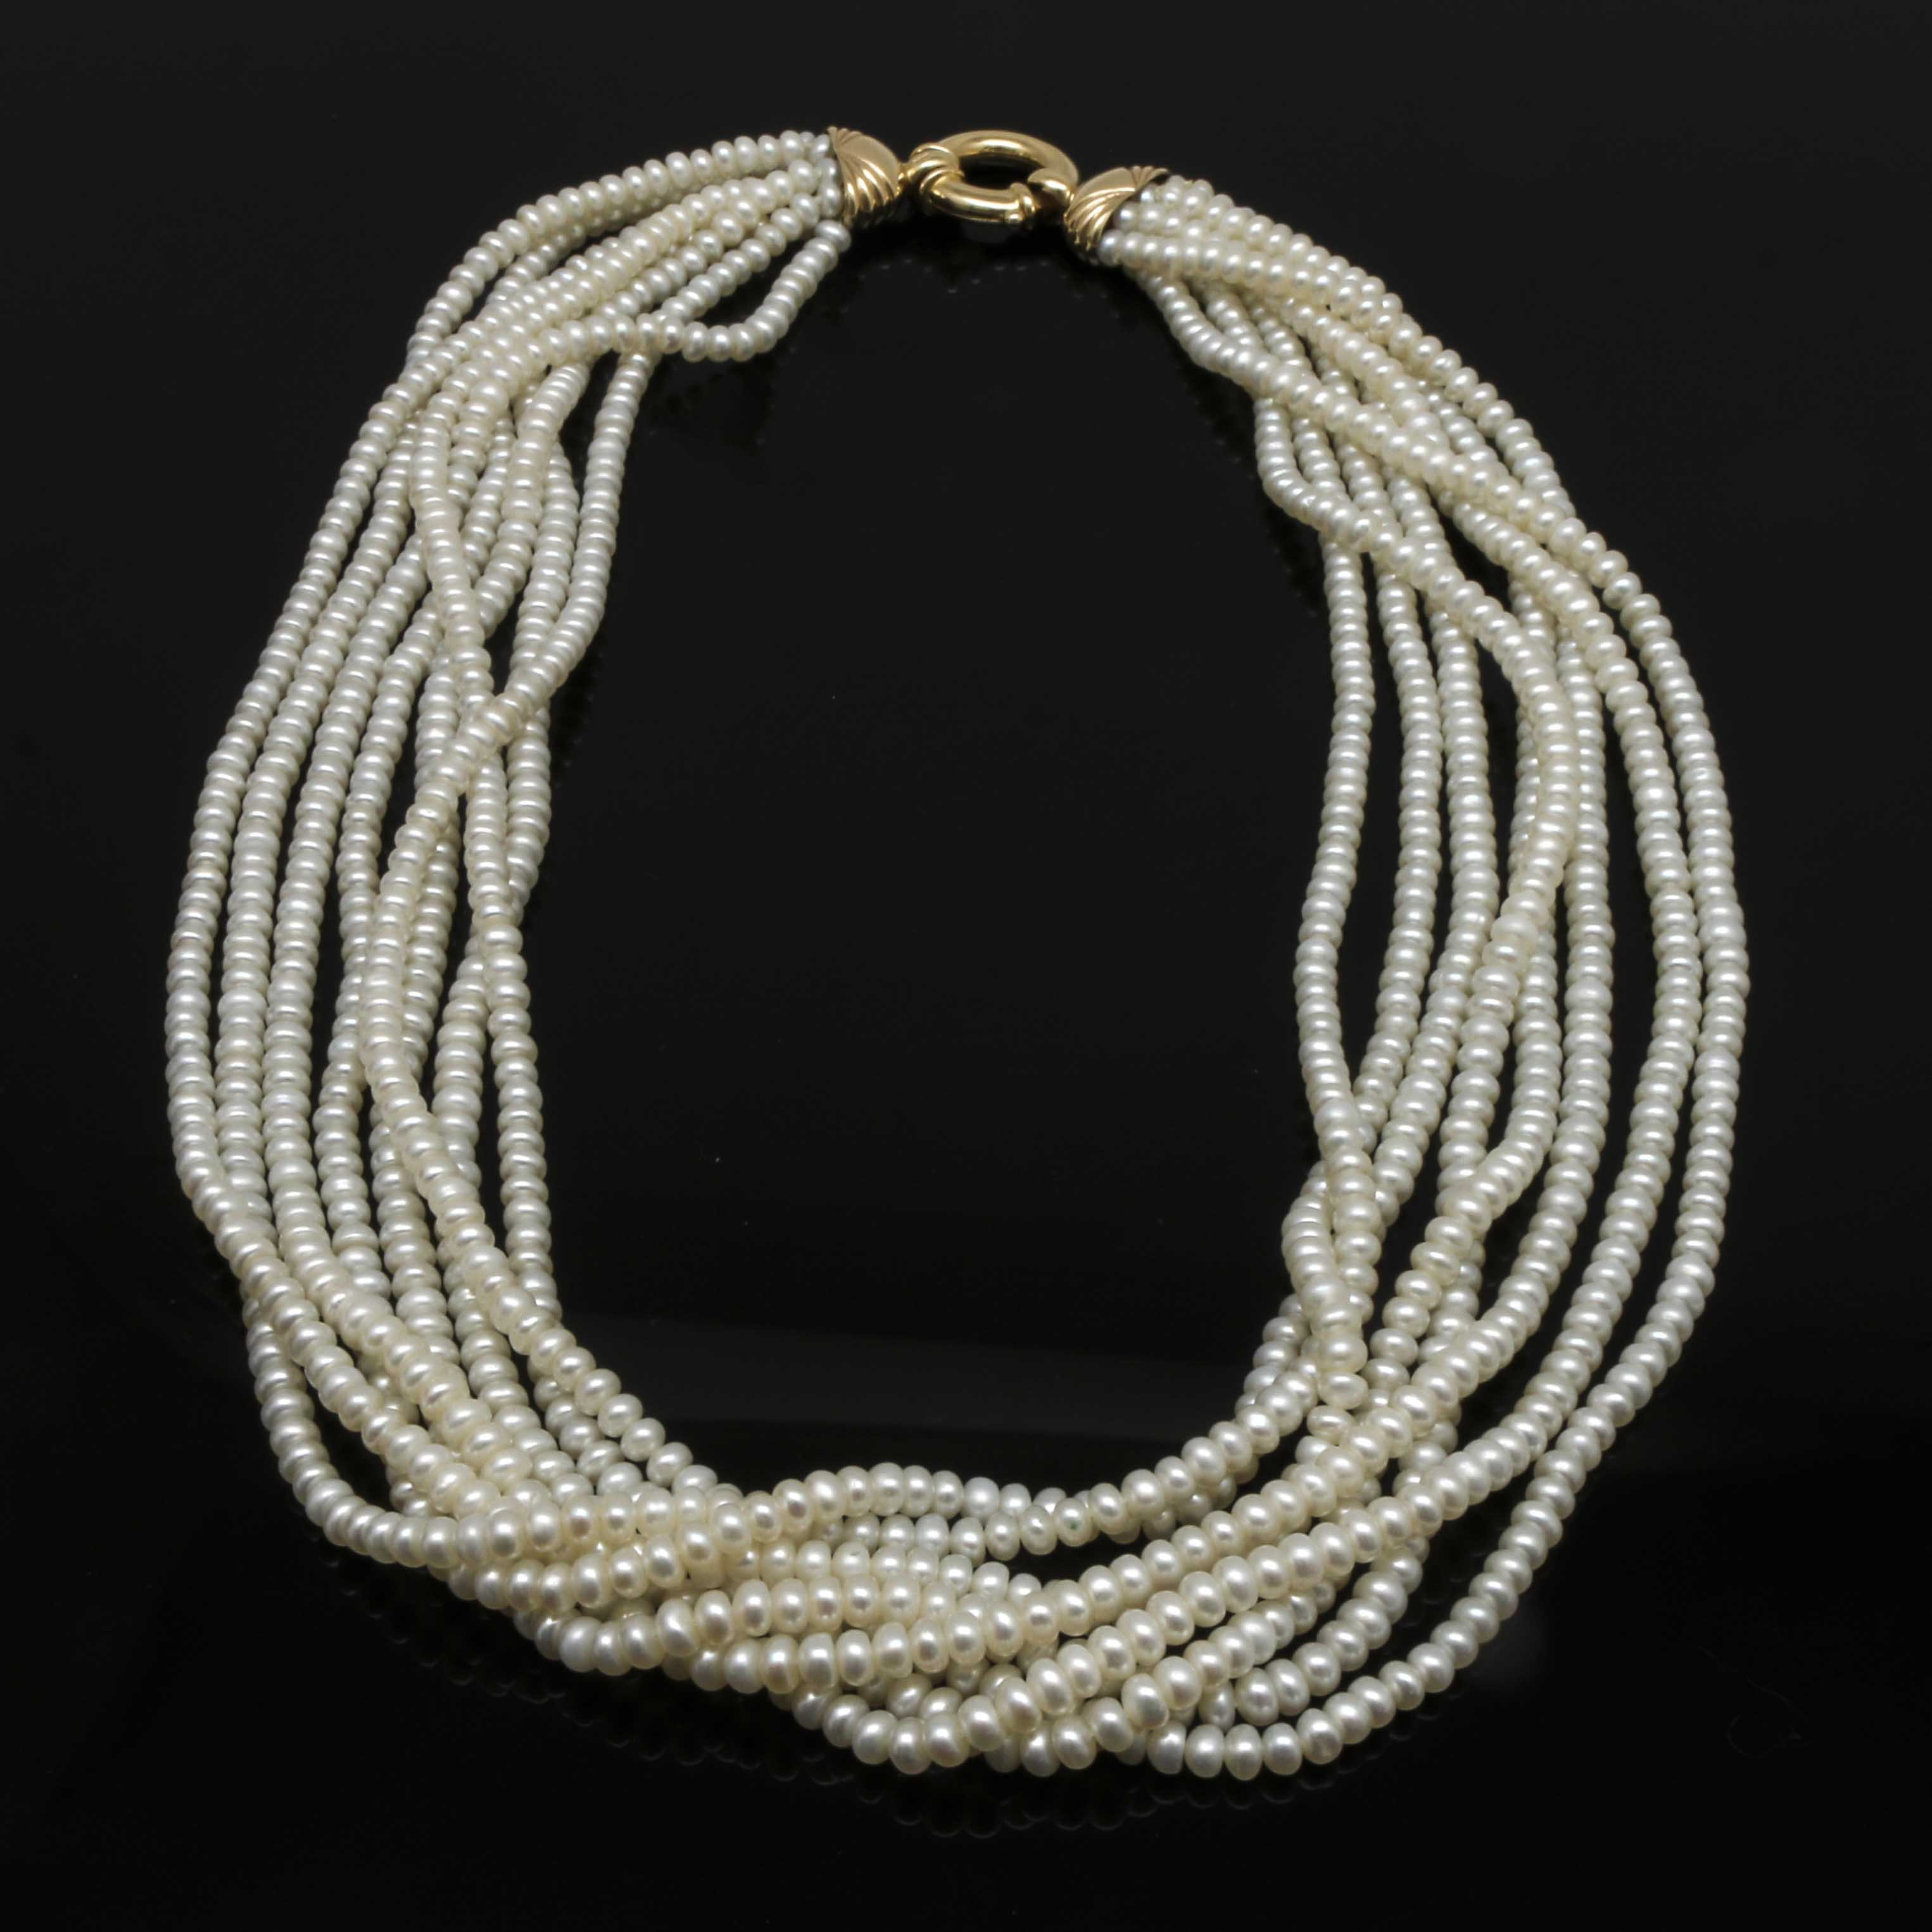 14K Yellow Gold Cultured Freshwater Pearl Multi Strand Necklace